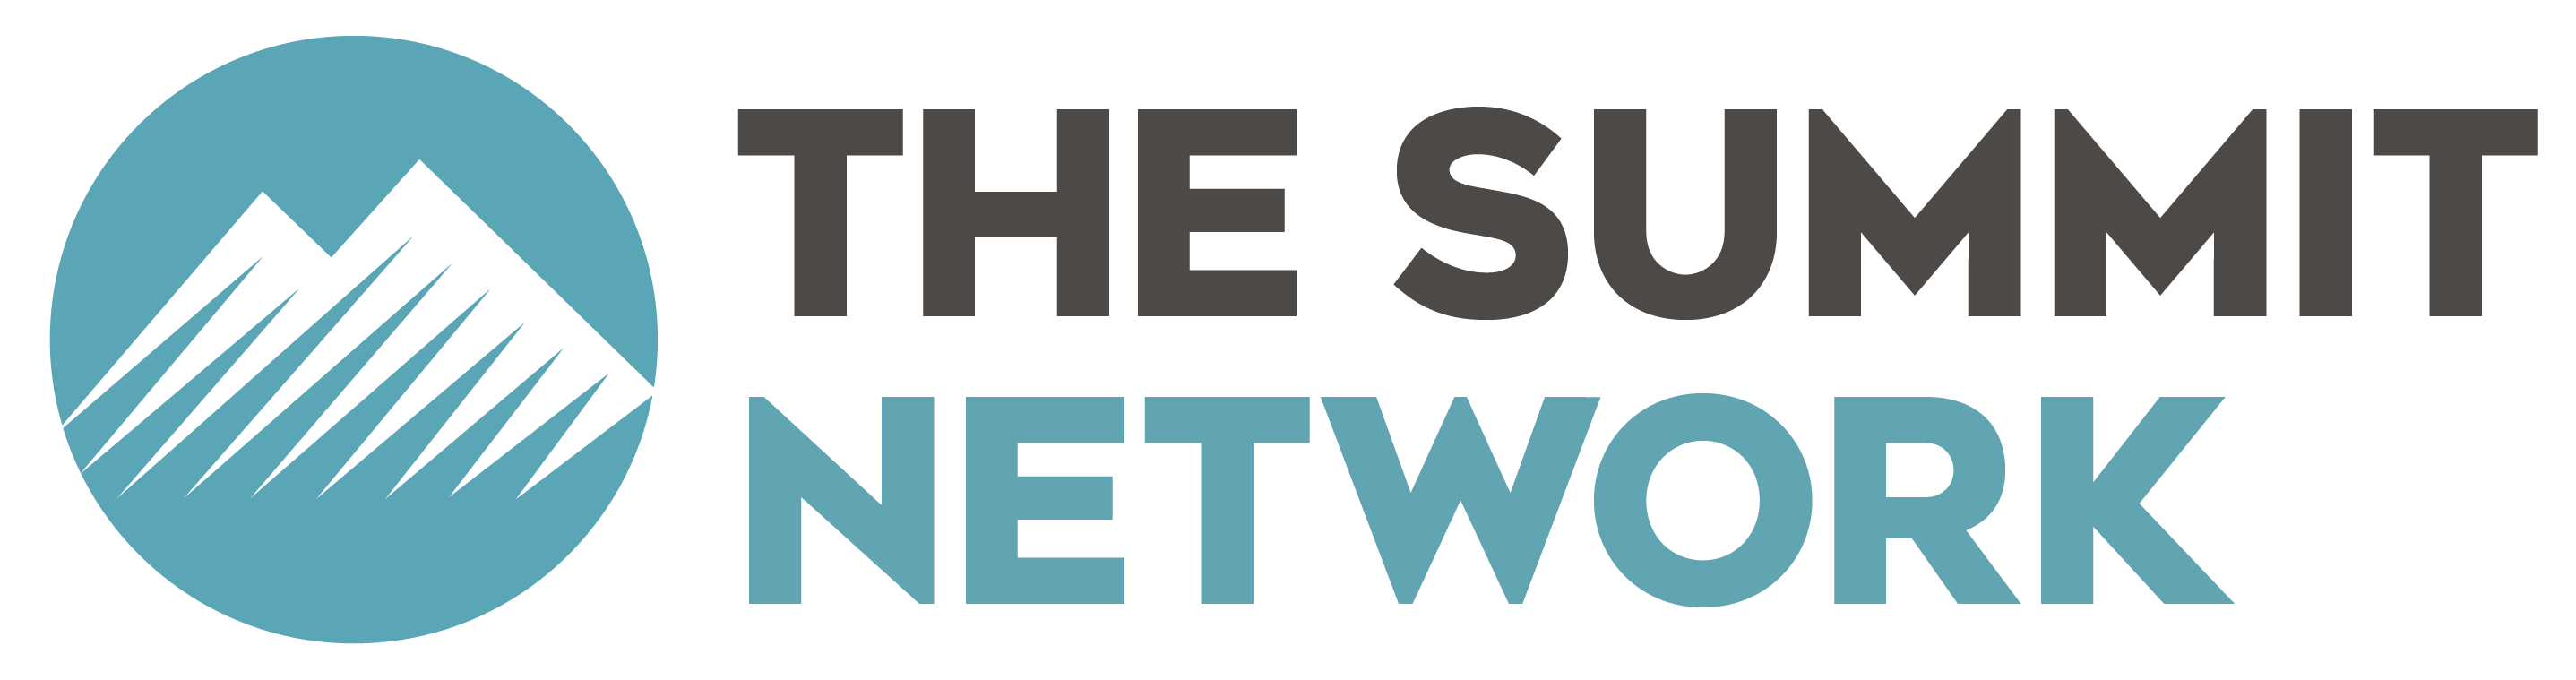 The Summit Network